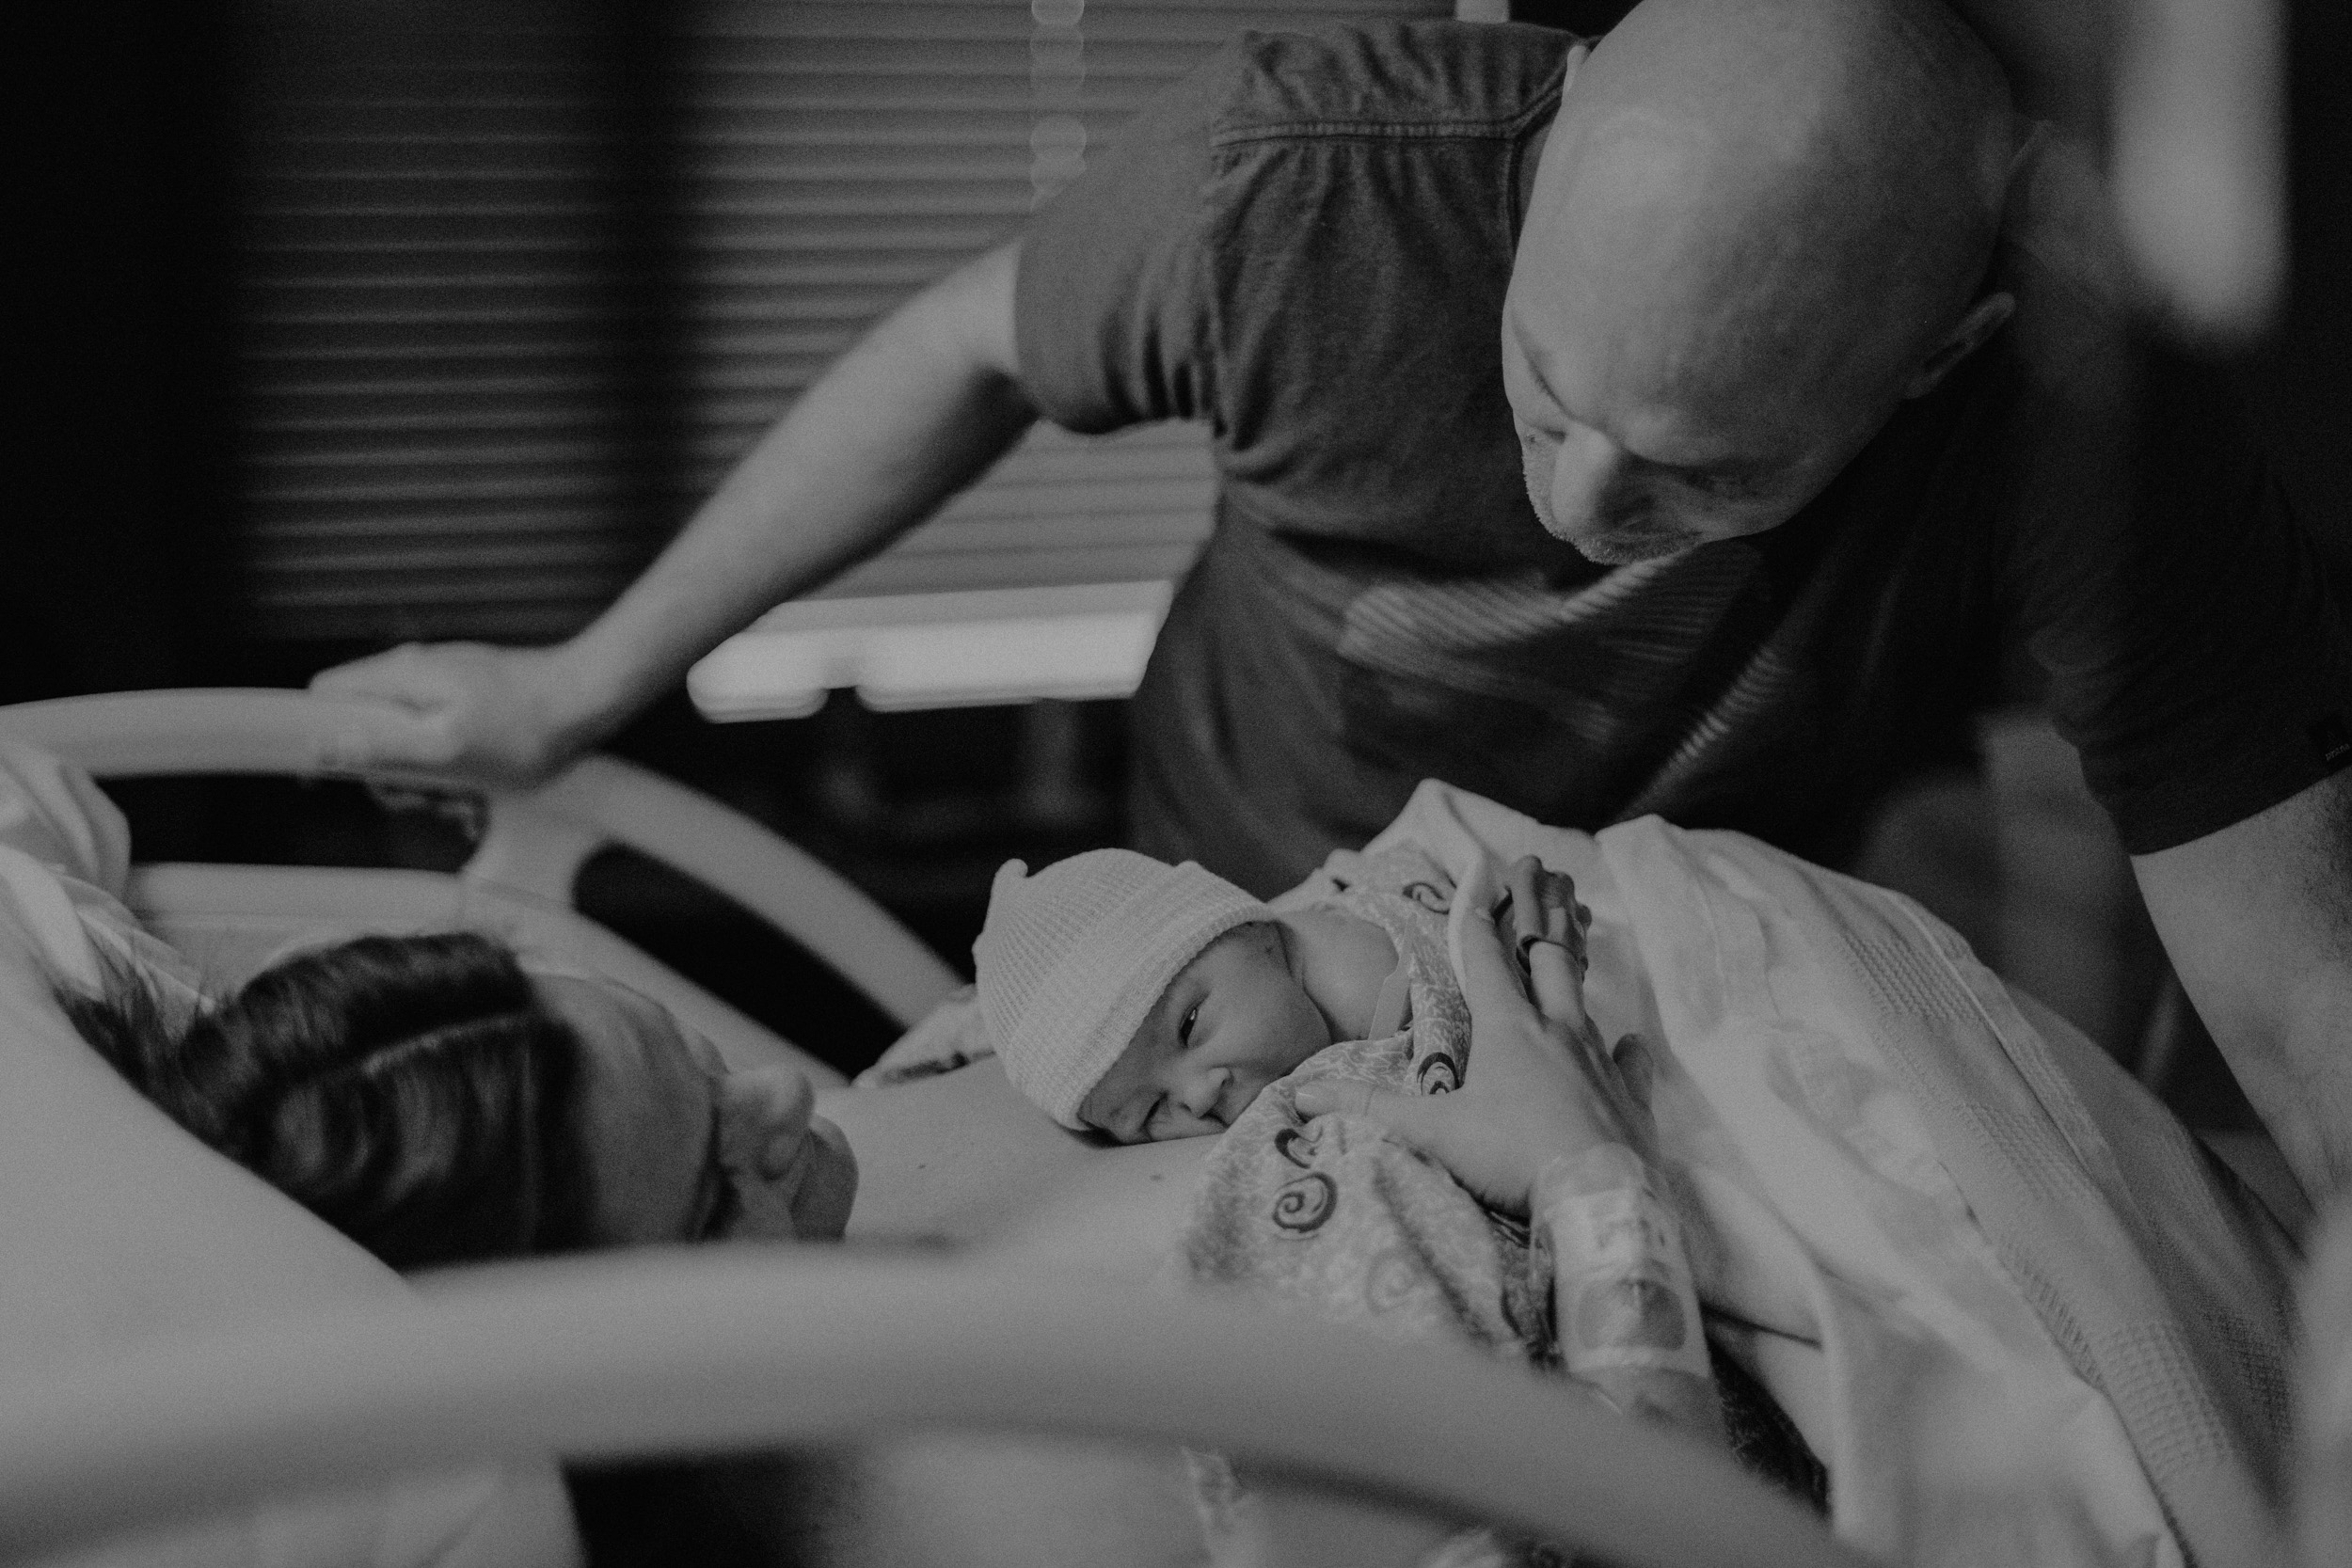 baby lying skin to skin on mom's chest after delivery dad looking at baby